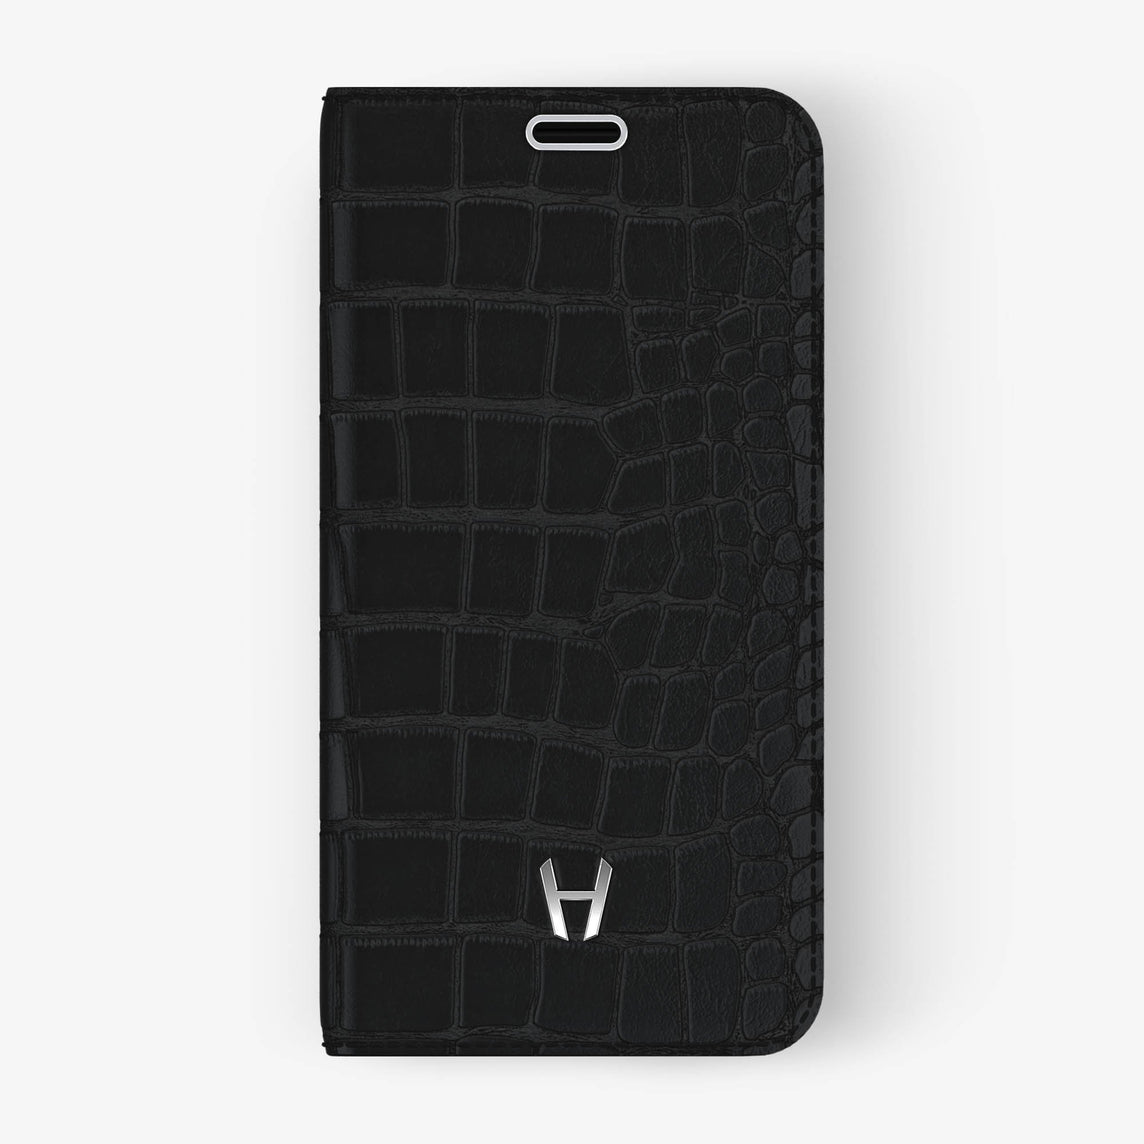 Alligator Folio Case iPhone X/Xs | Phantom Black - Stainless Steel without-personalization